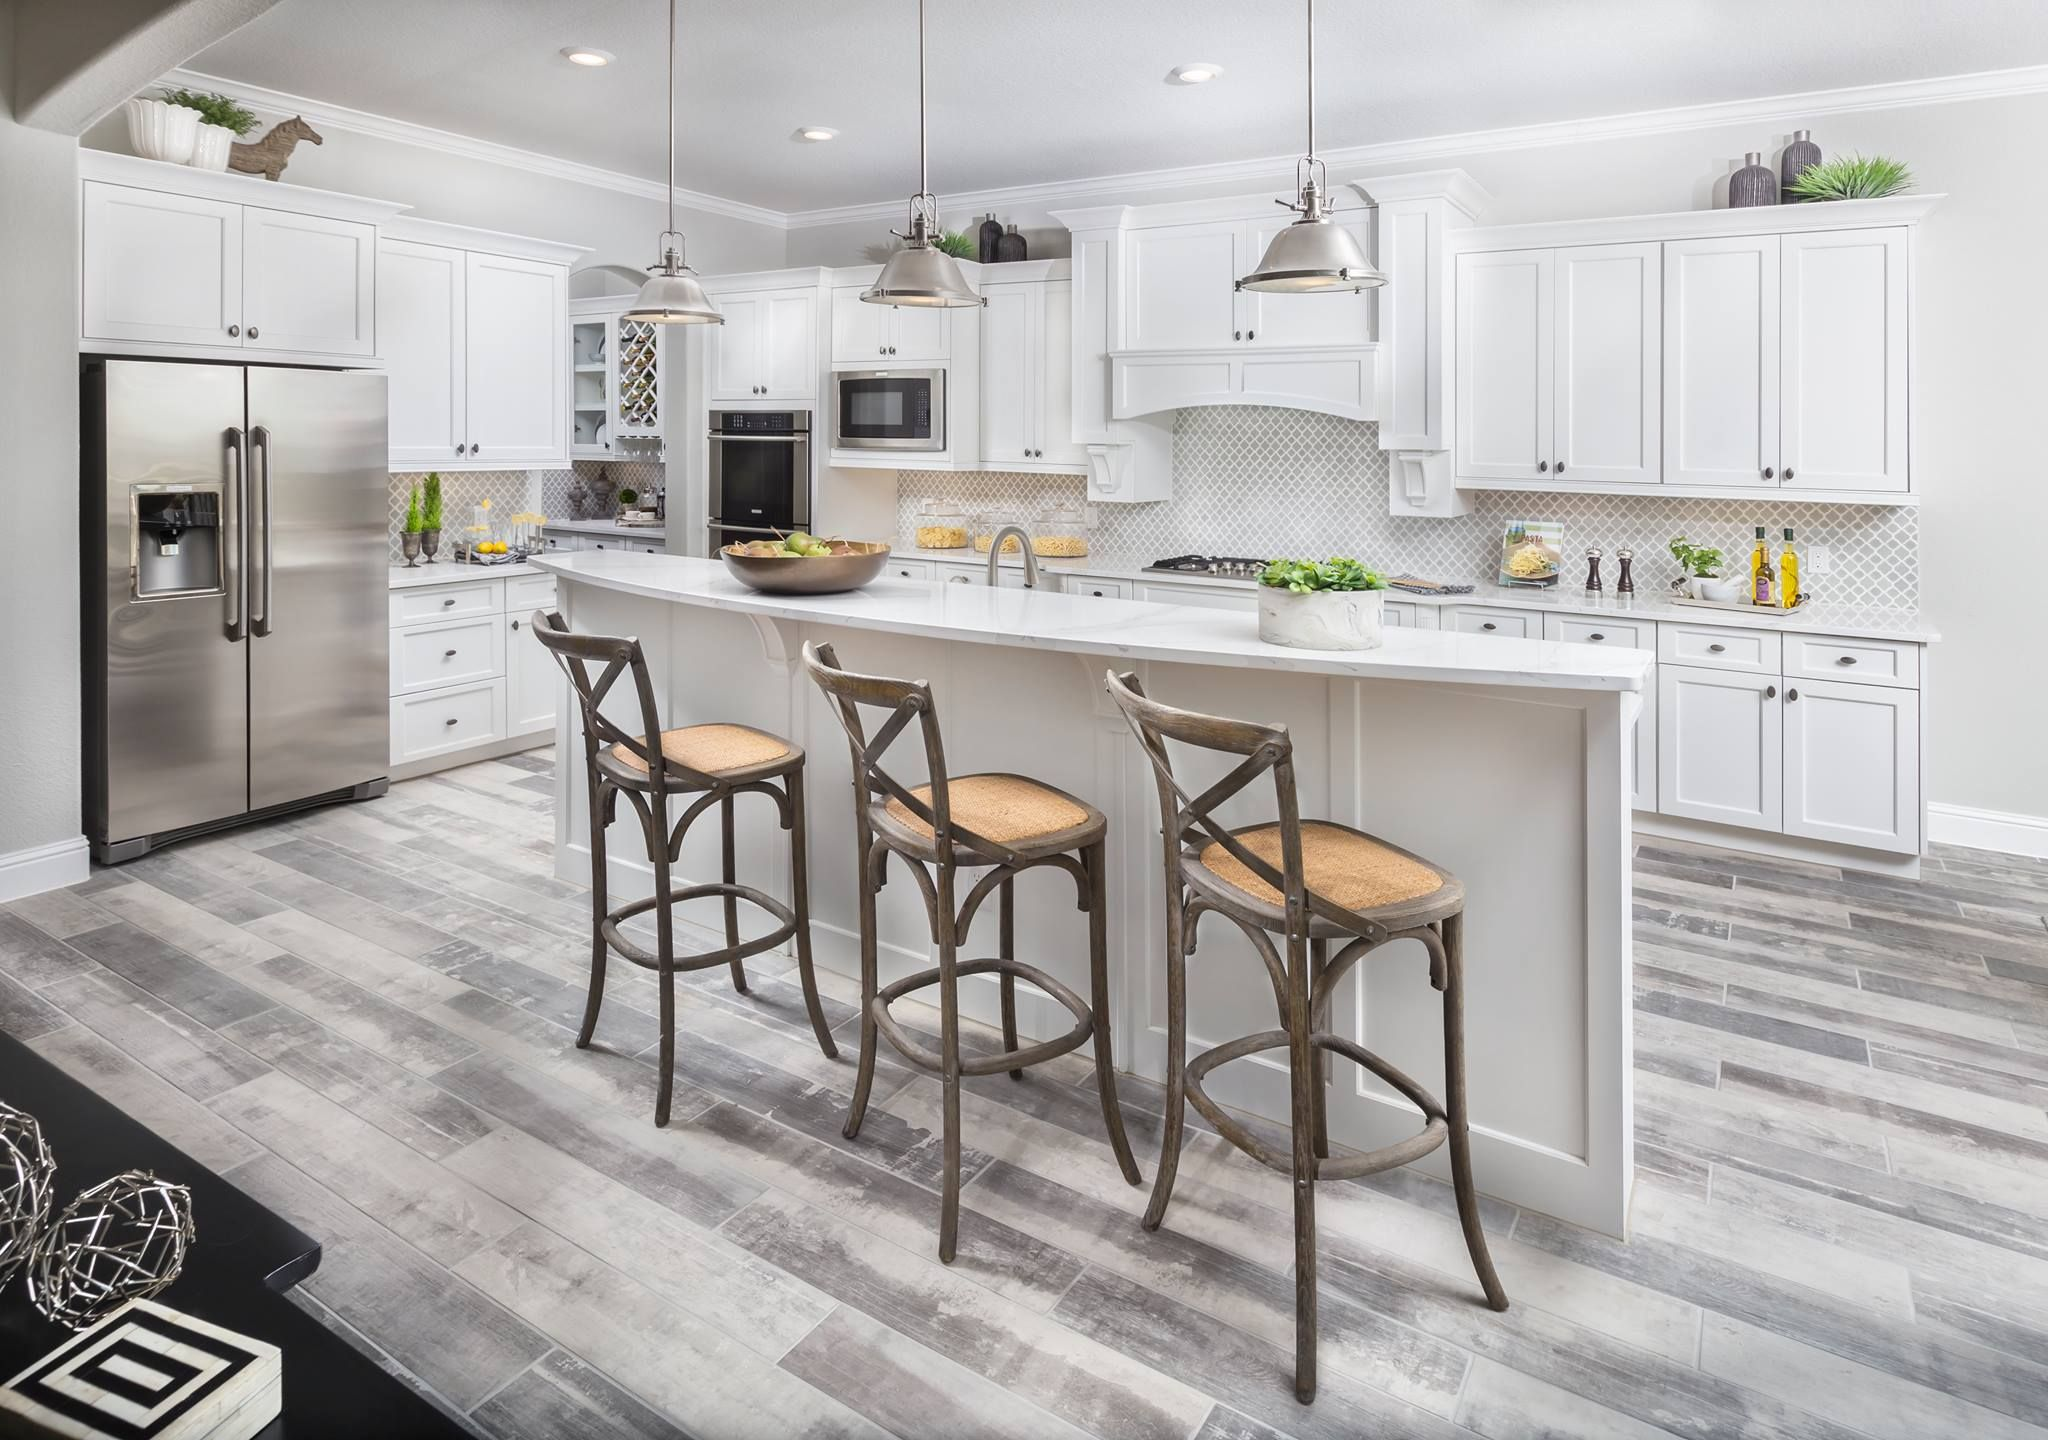 Would You Feel Like A Winner If You Could Cook Dinner In This Kitchen Kitchen Decor Kitchen Cabinet Remodel Kitchen Remodel